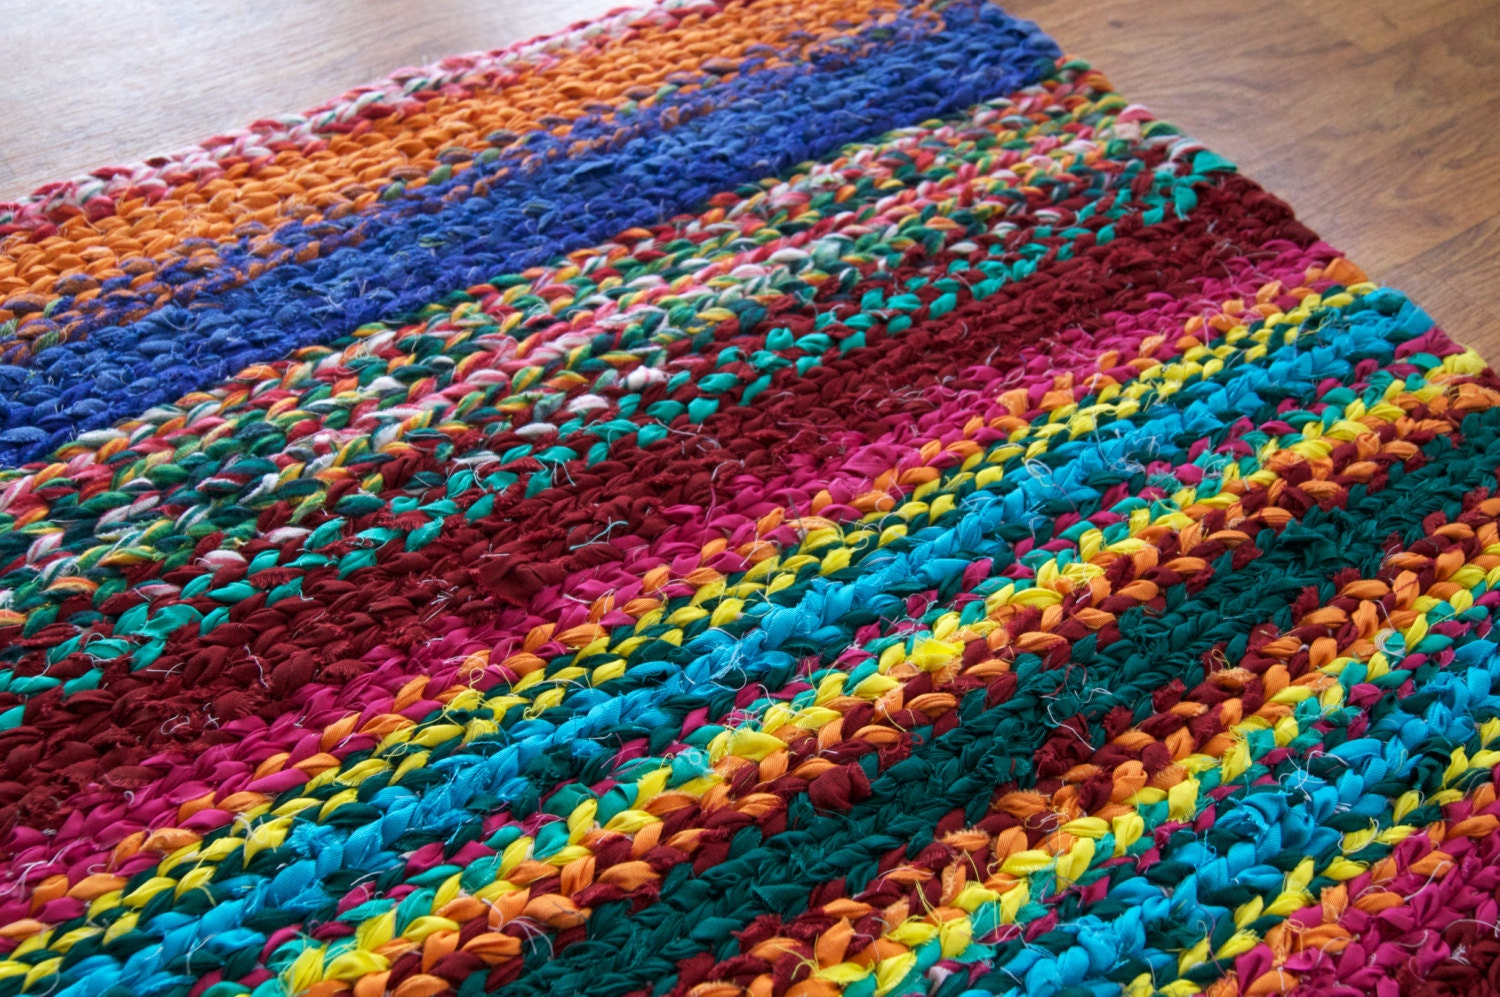 Rag Rug Twined Colorful Rug 36 X 27 Inches